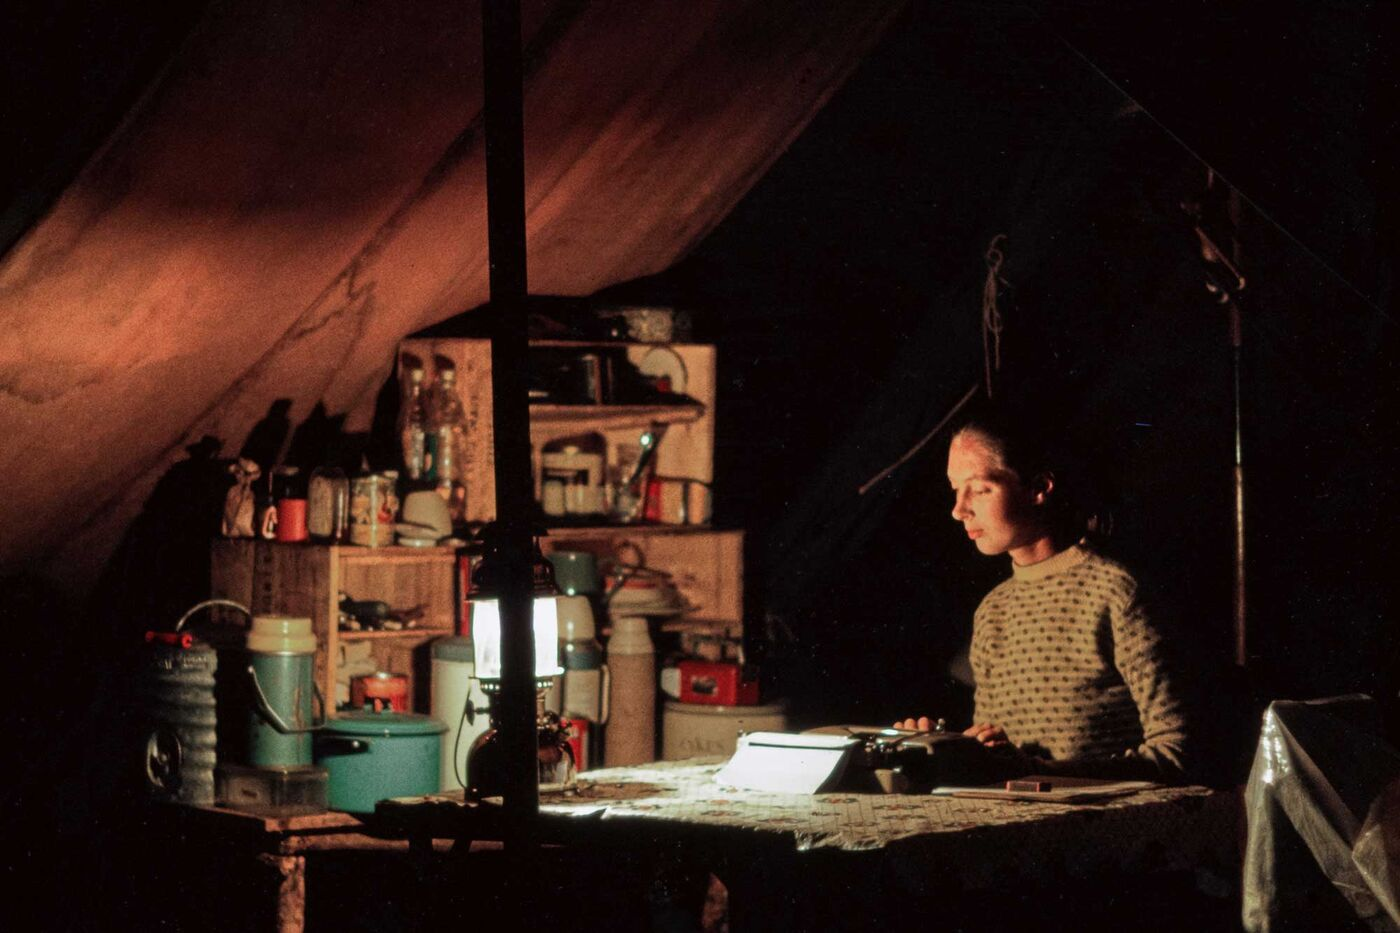 Jane Goodall in a field tent using a typewriter by the light of a lantern.